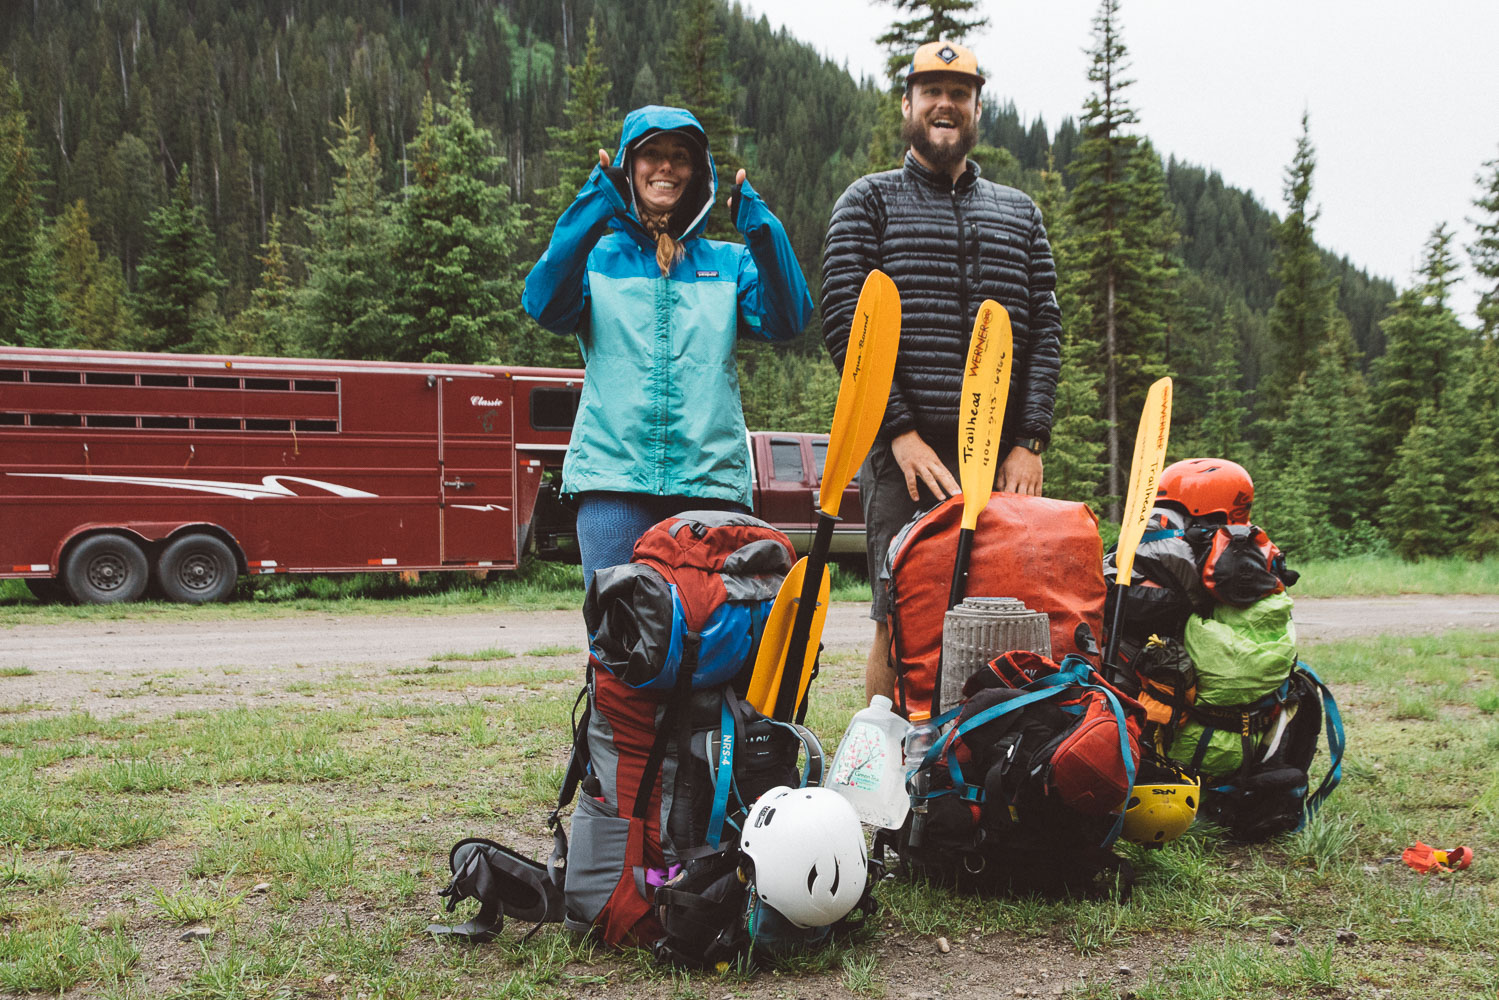 A couple of stoked people, and a few very heavy backpacks.